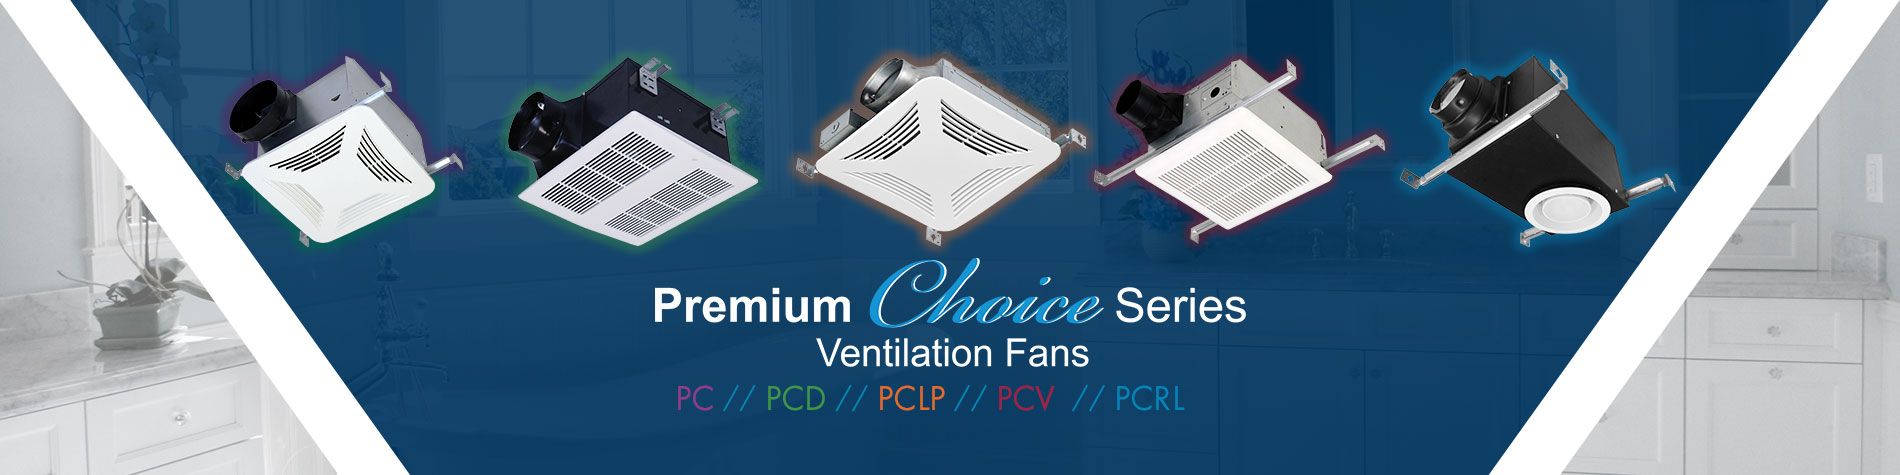 Premium Choice Series